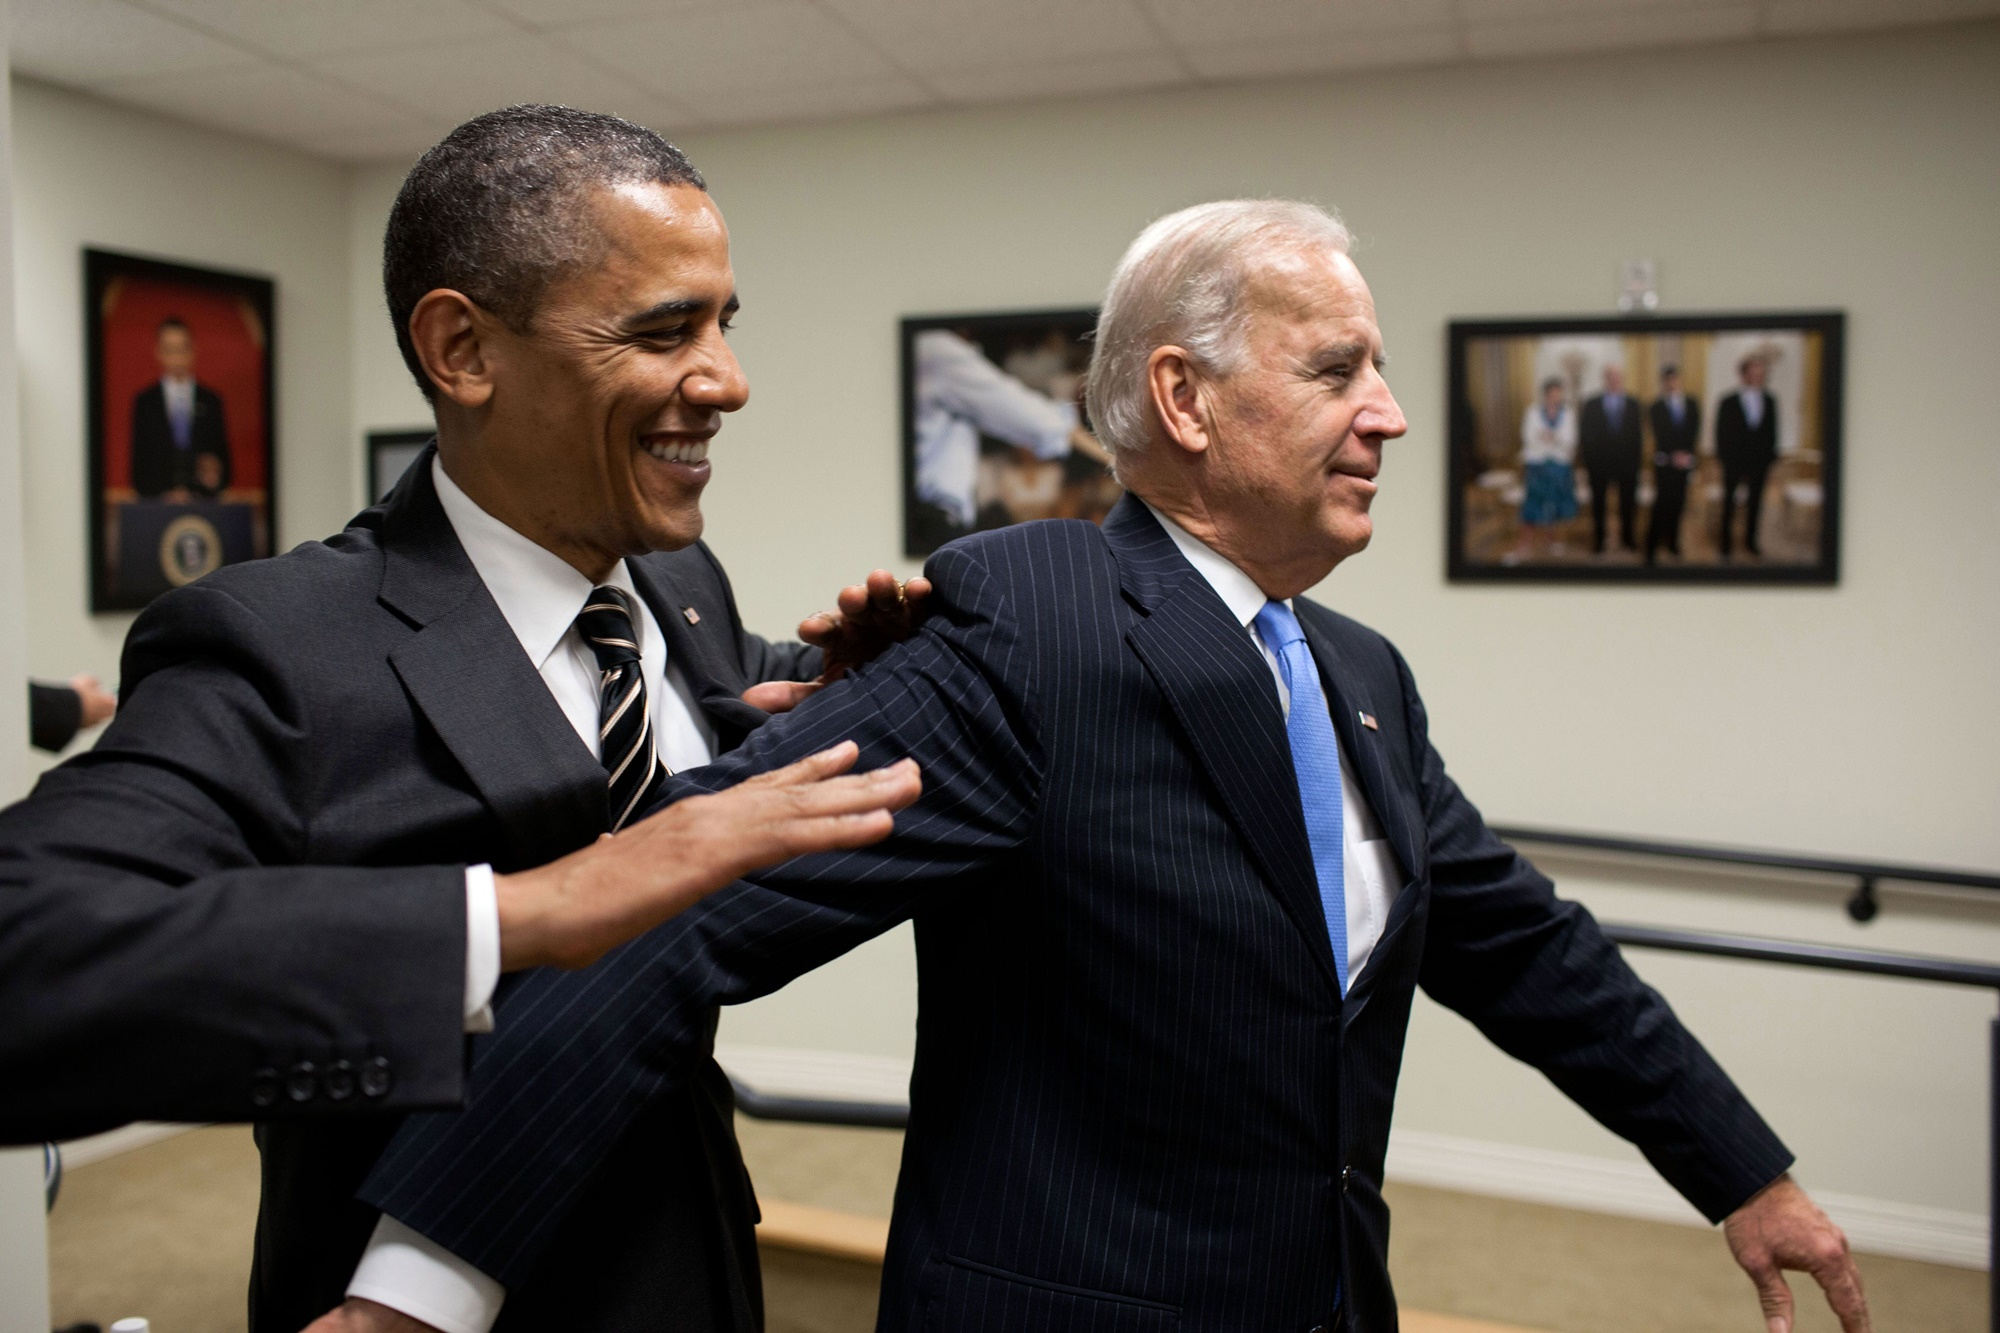 barack-obama-urges-democrats-to-unite-to-beat-donald-trump-in-2020-is-he-helping-joe-biden